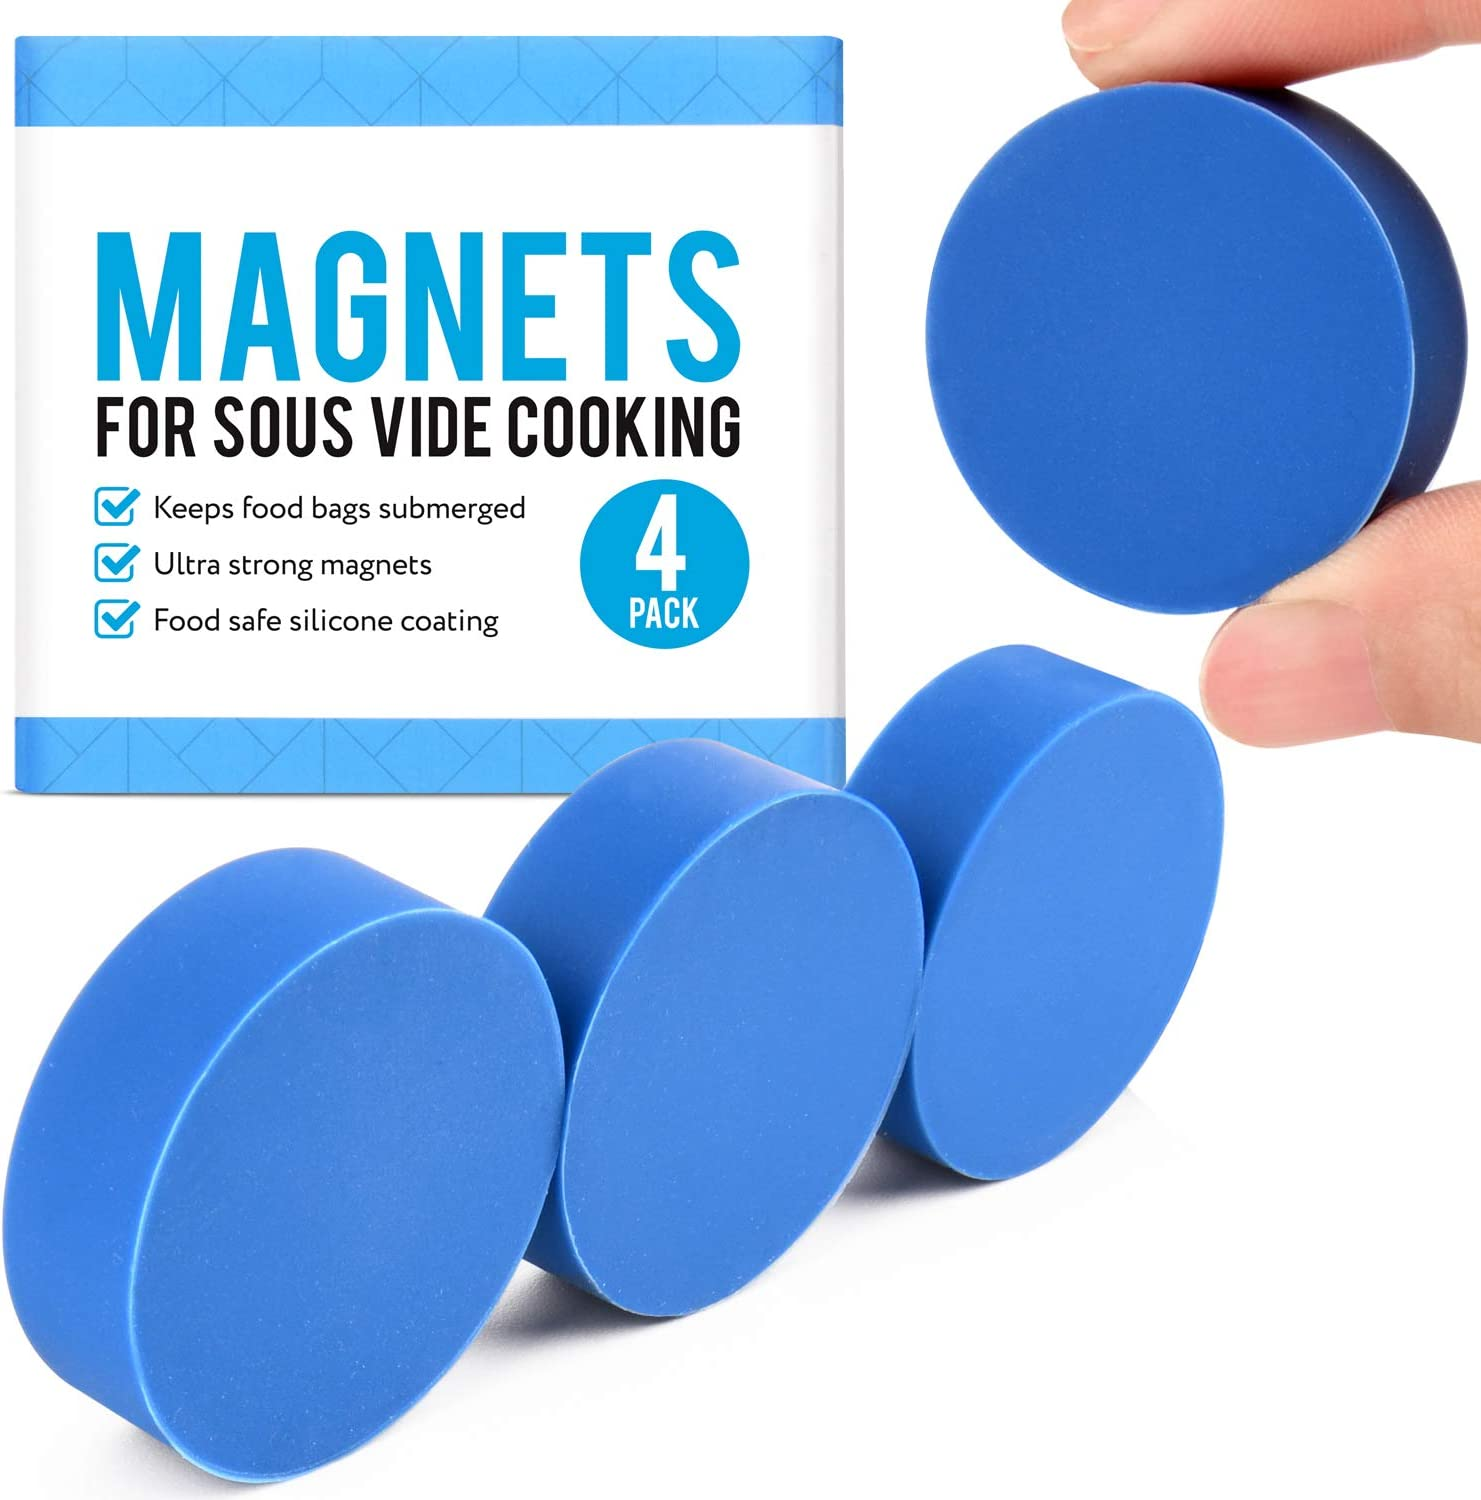 [4 pack] Sous Vide Magnets to Keep Bags Submerged and In Place - Sous Vide Accessories to Stop Floating Bags and Undercooking - Great Alternative to Sous Vide Weights, Balls, Clips, and Racks